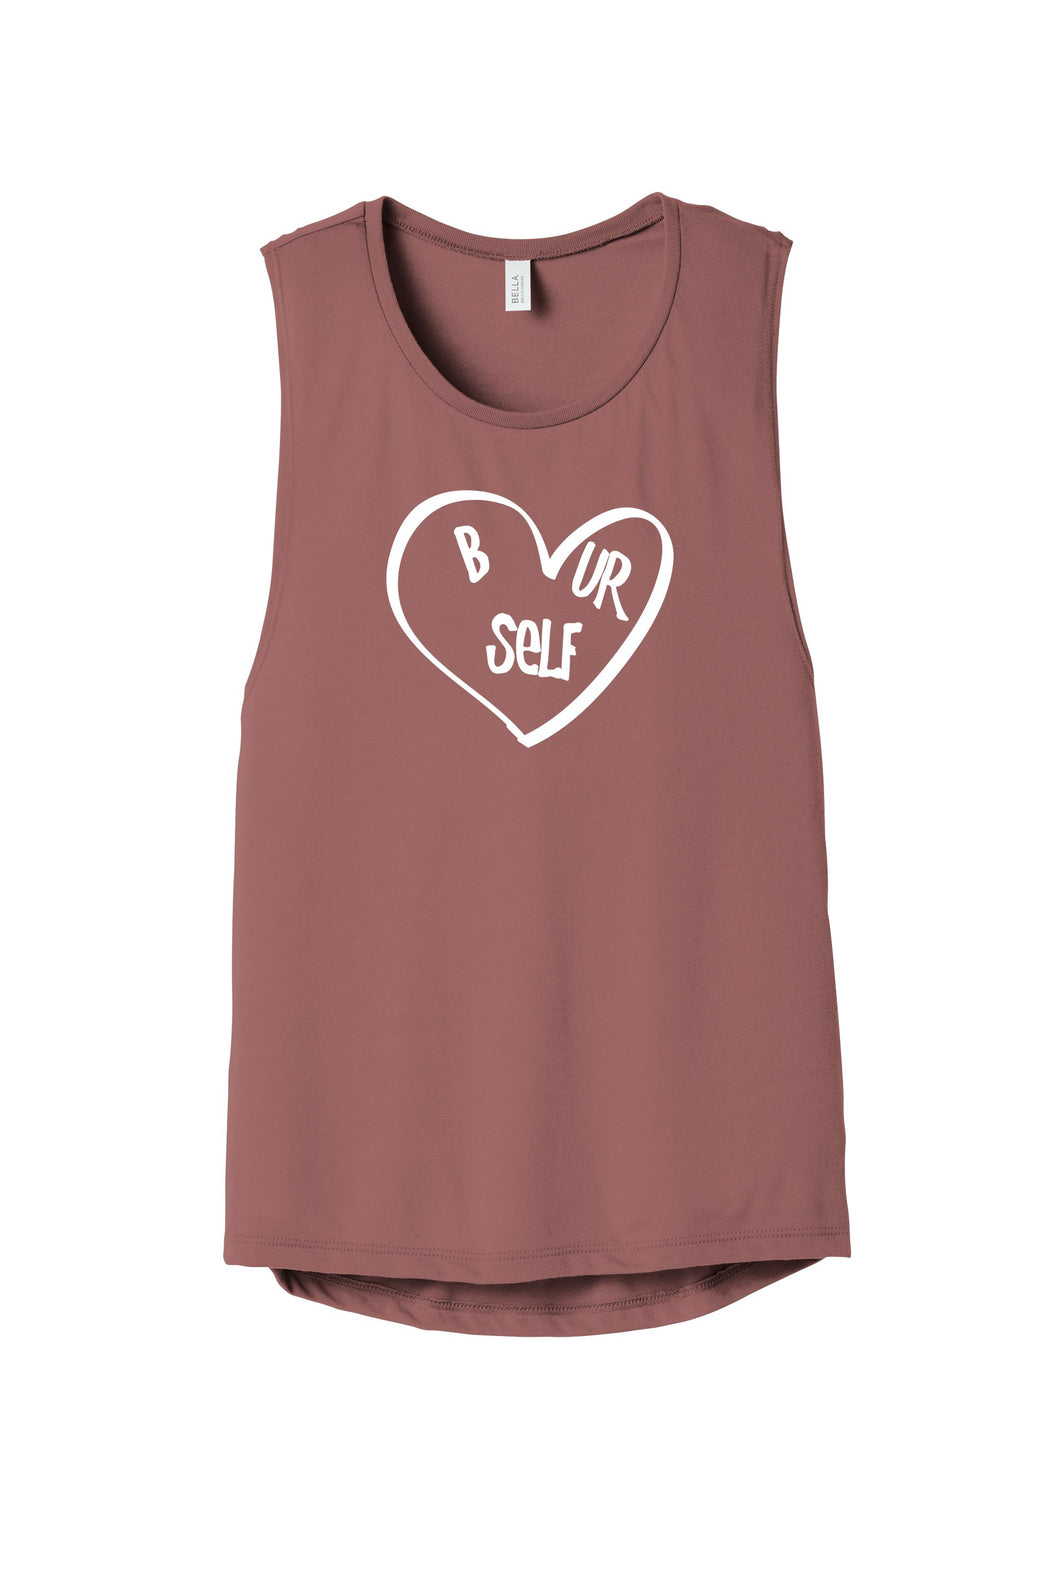 B UR SELF TankTop